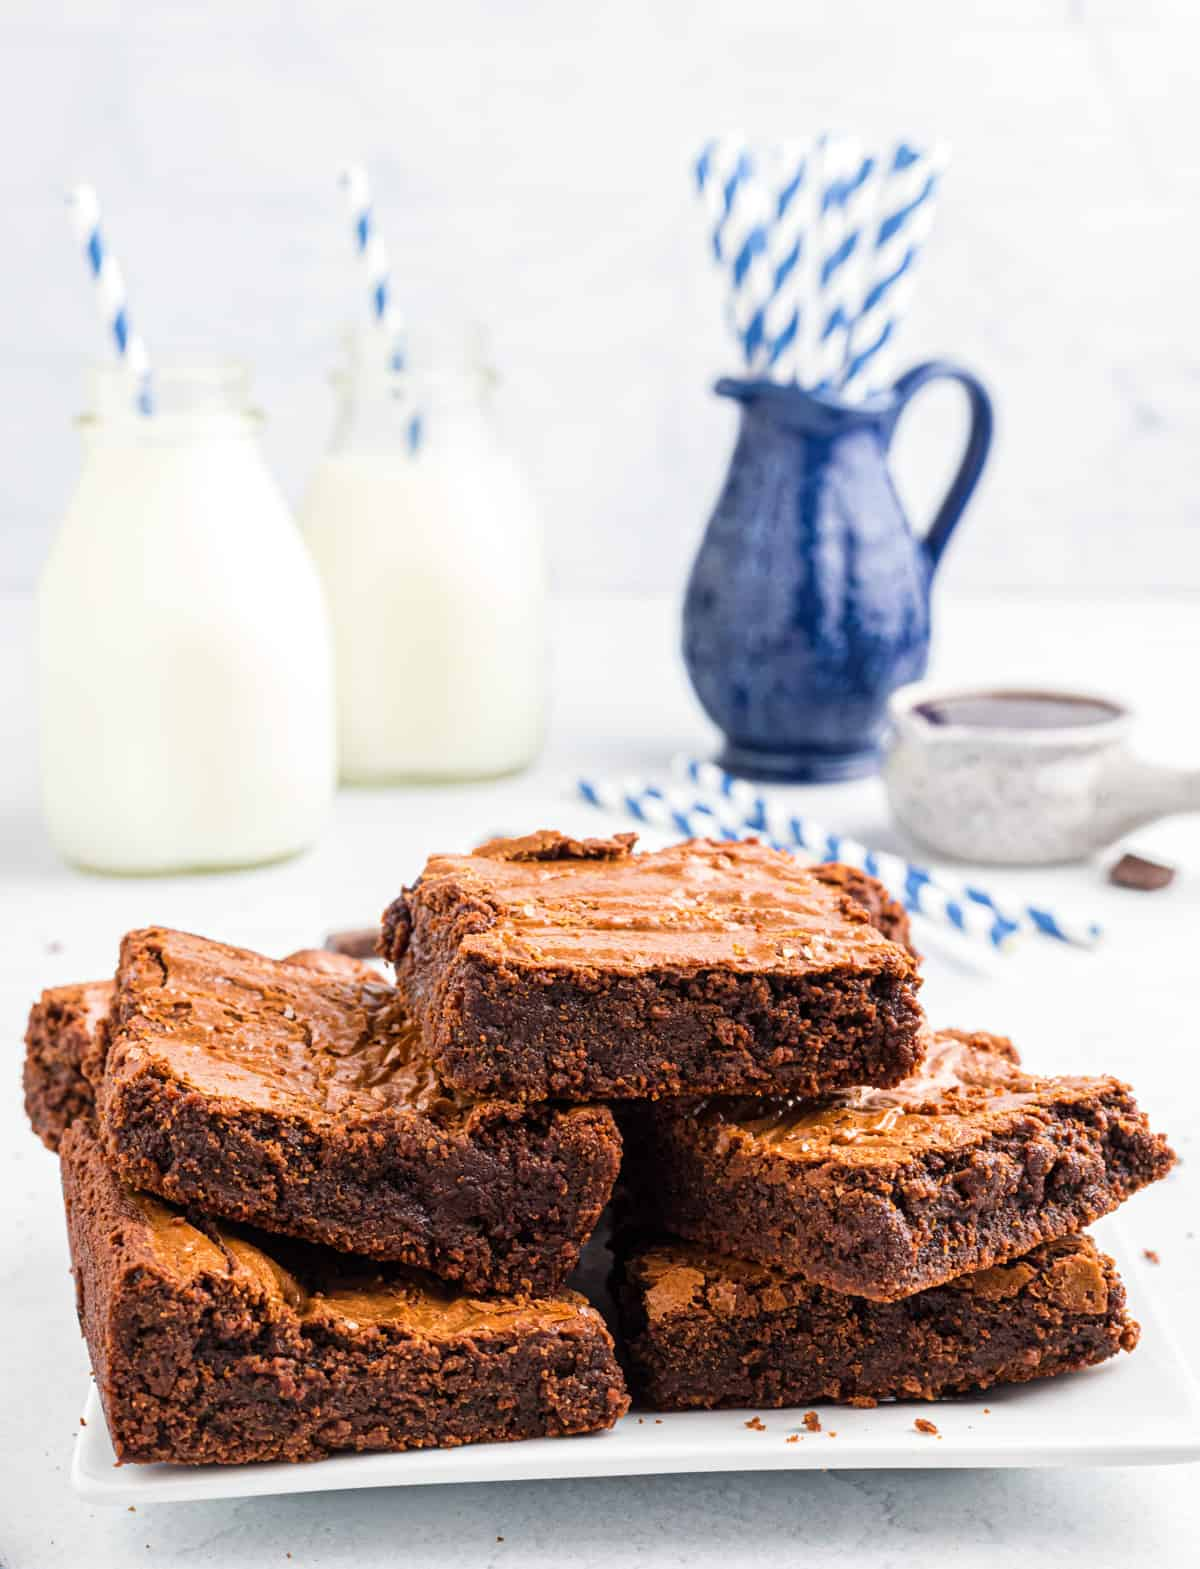 Stacked brownies on white plate